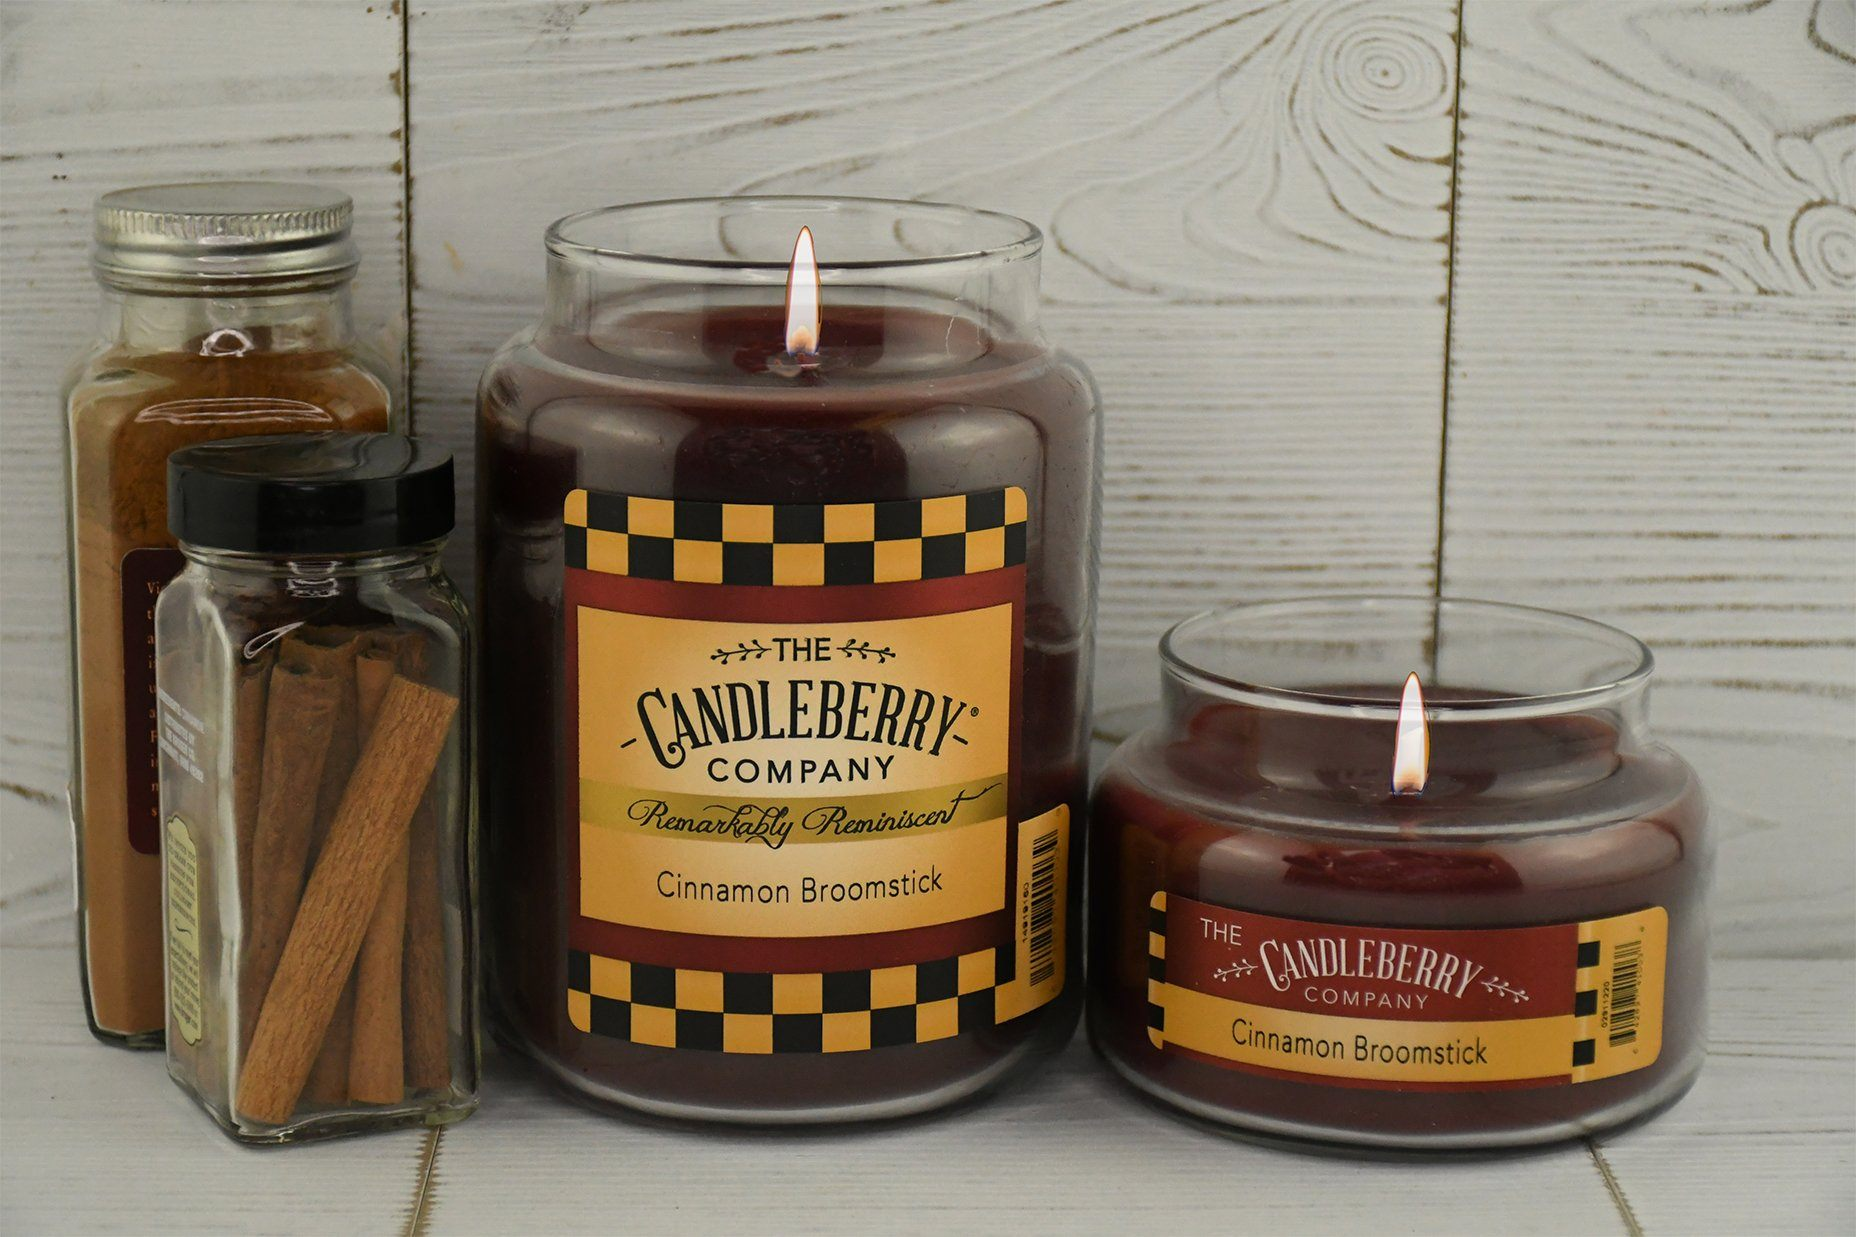 candleberry_cinnamon_broomstick_small_10_oz_jar_candle